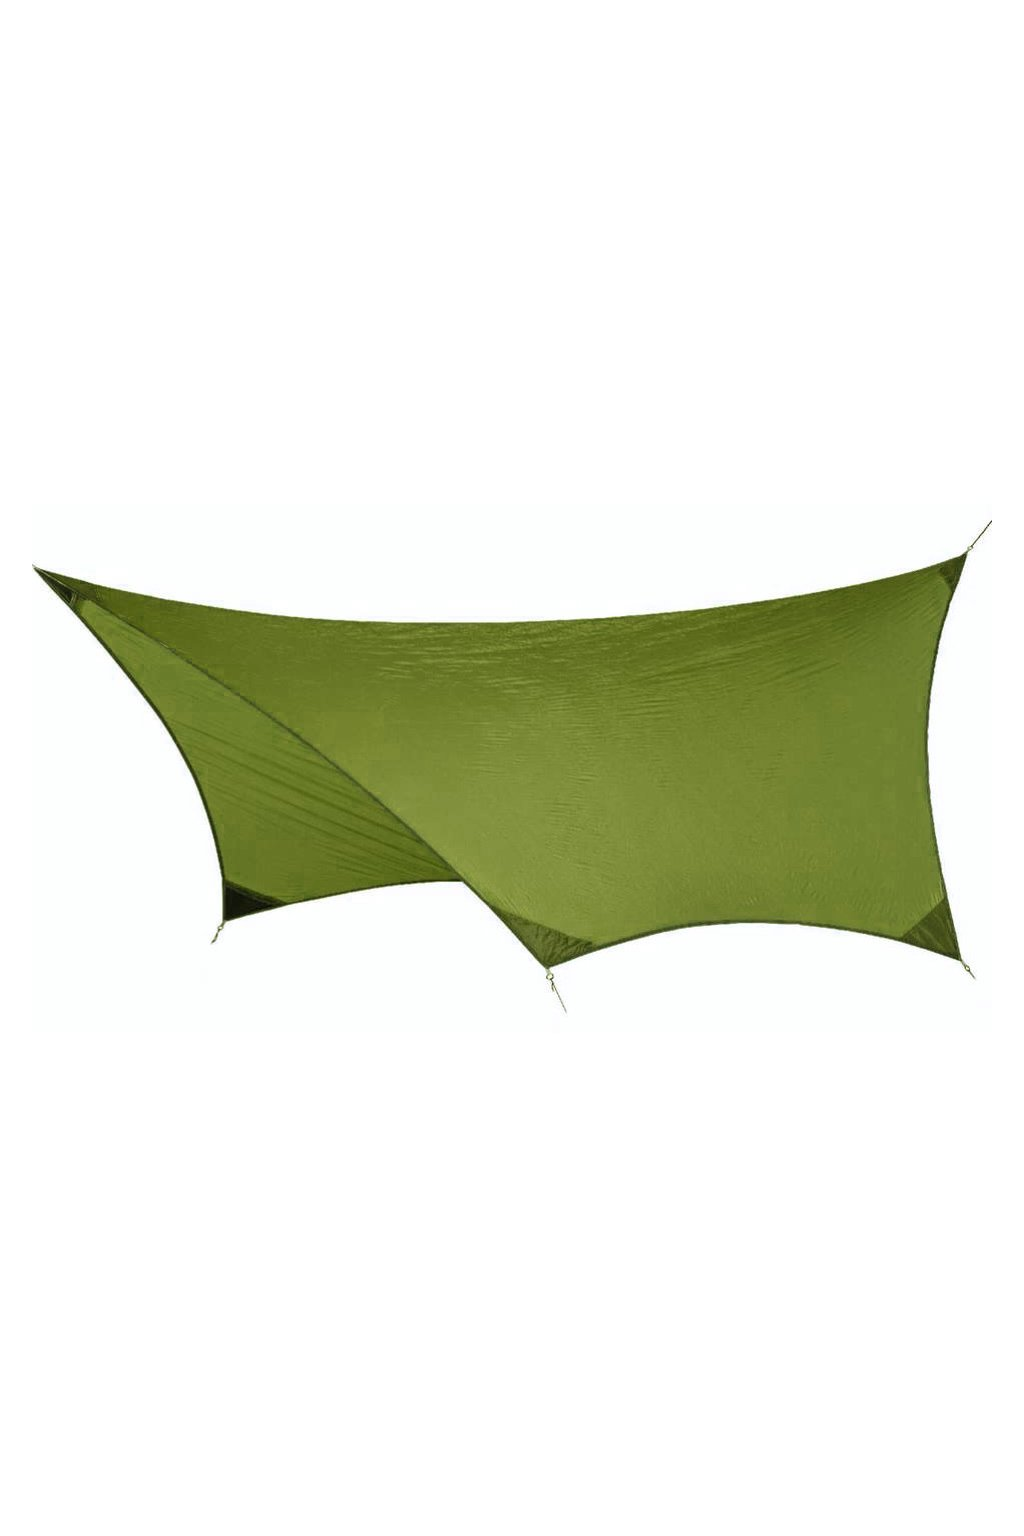 Tarp RainFly green